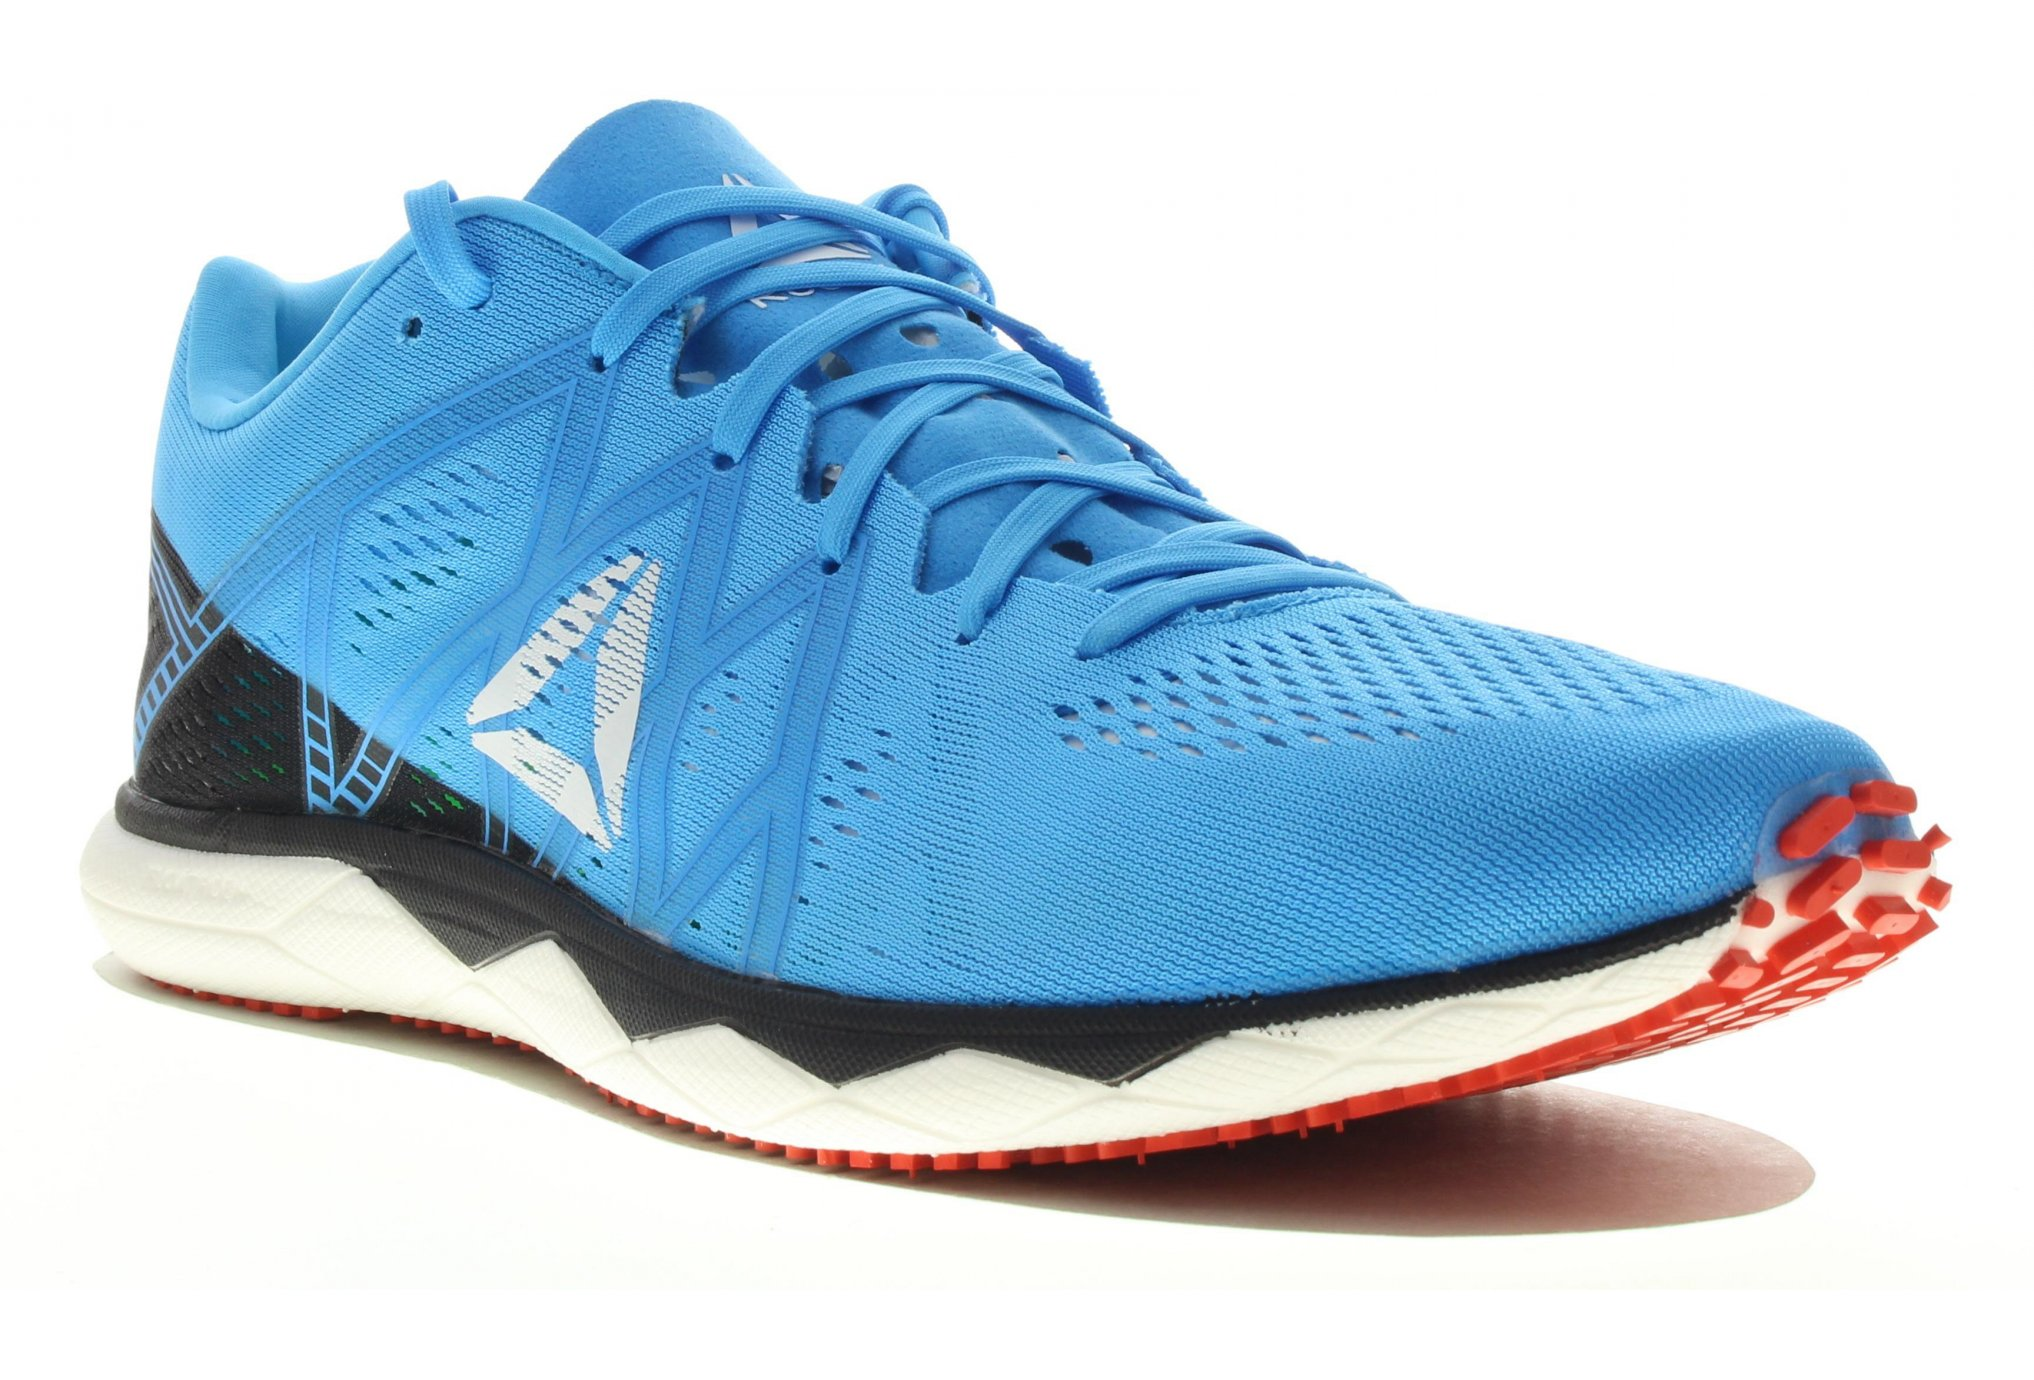 Reebok Floatride Run Fast Pro déstockage running